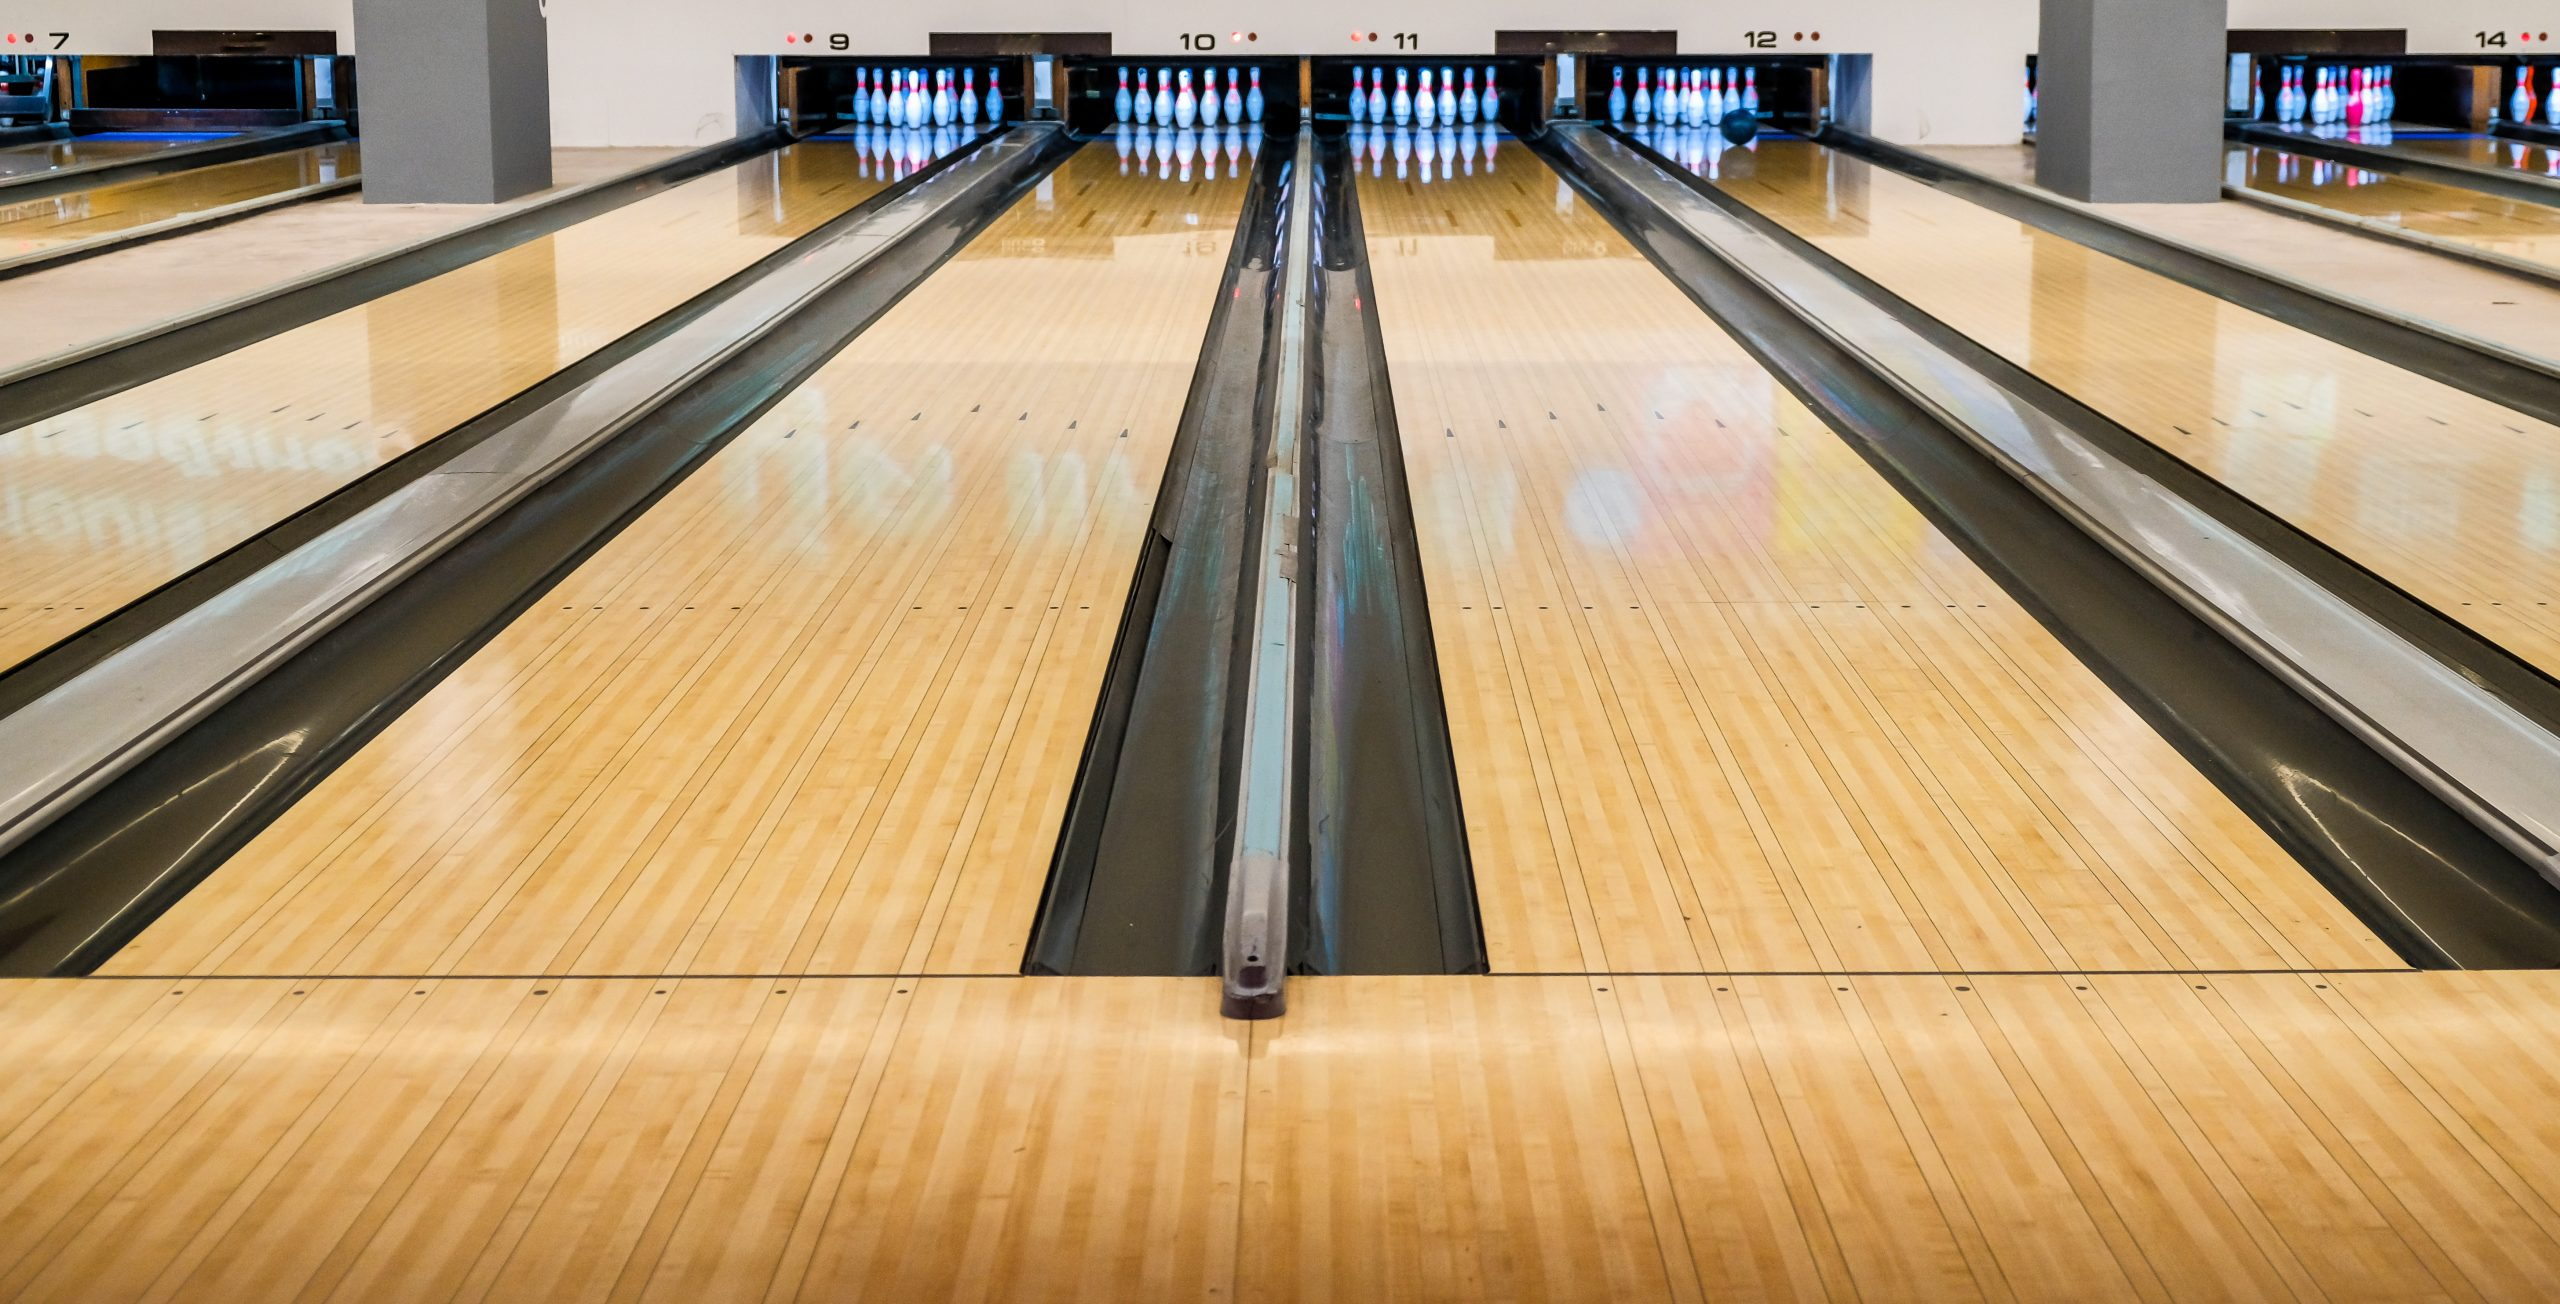 Bowling wooden floor with lane, Generic Bowling Alley lanes with bowling ball going towards the pins.